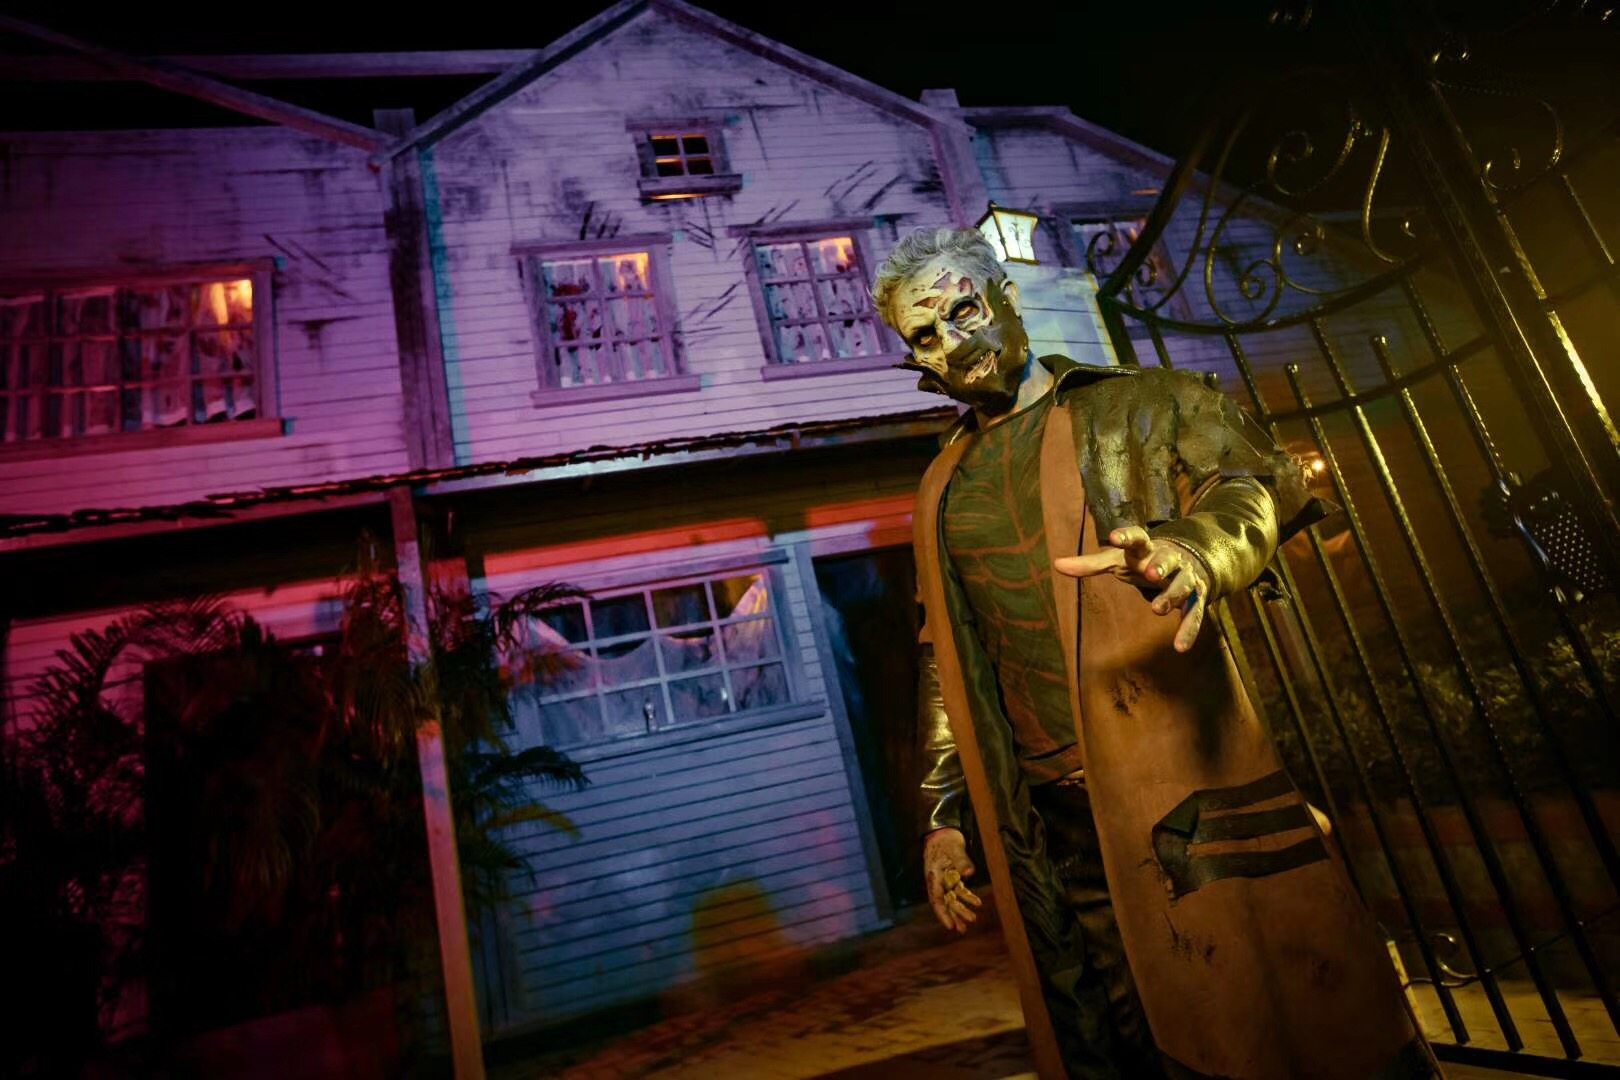 Outside at The Cursed House Haunted House in 2019